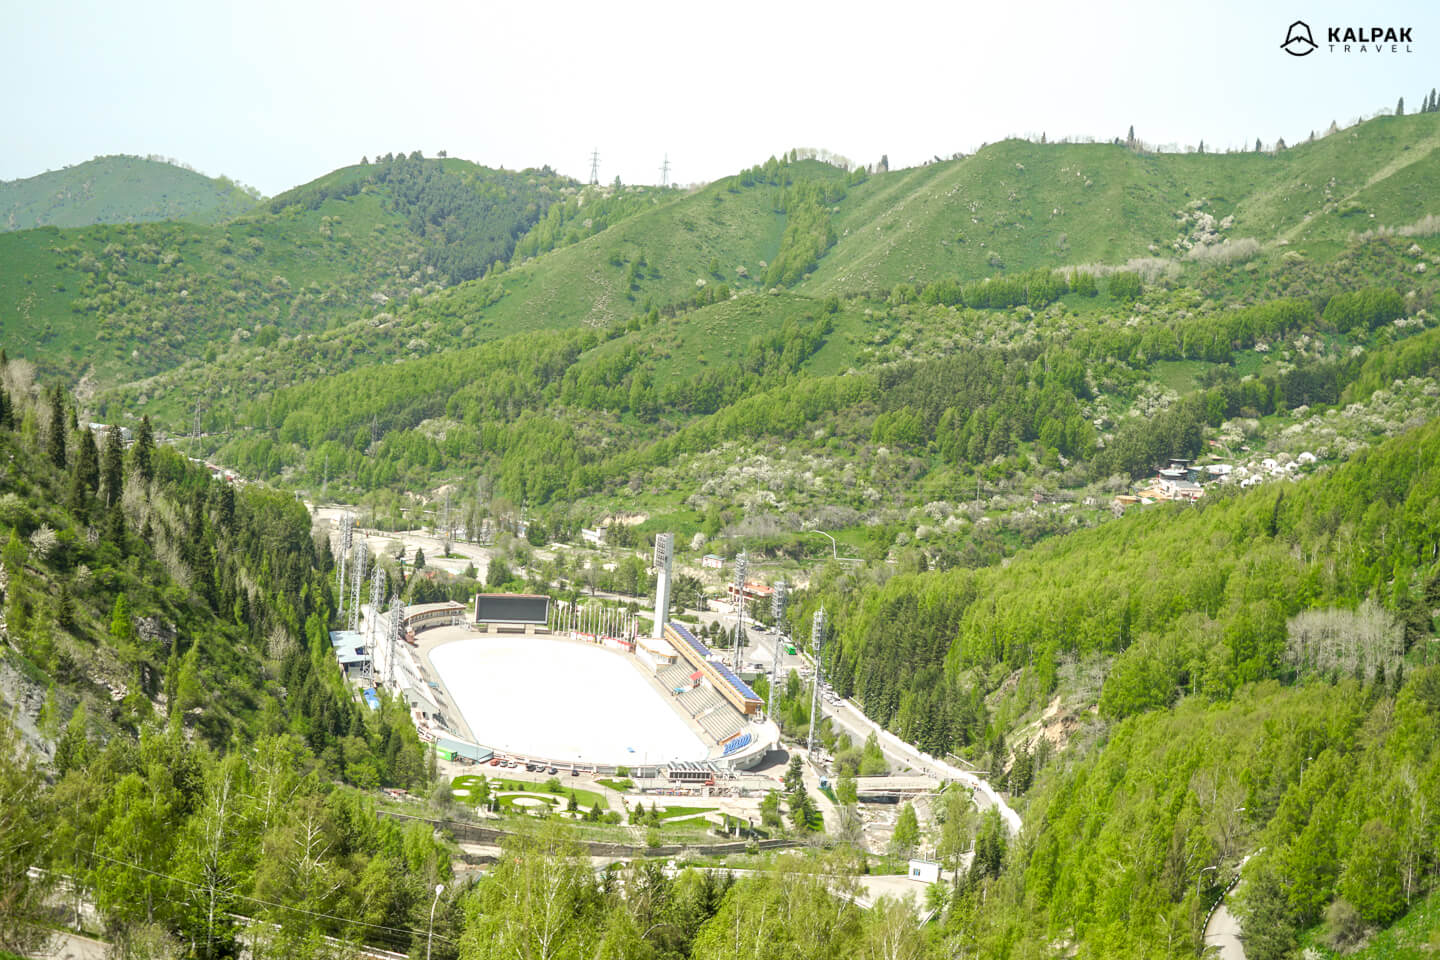 Medeu skating rink in the mountains